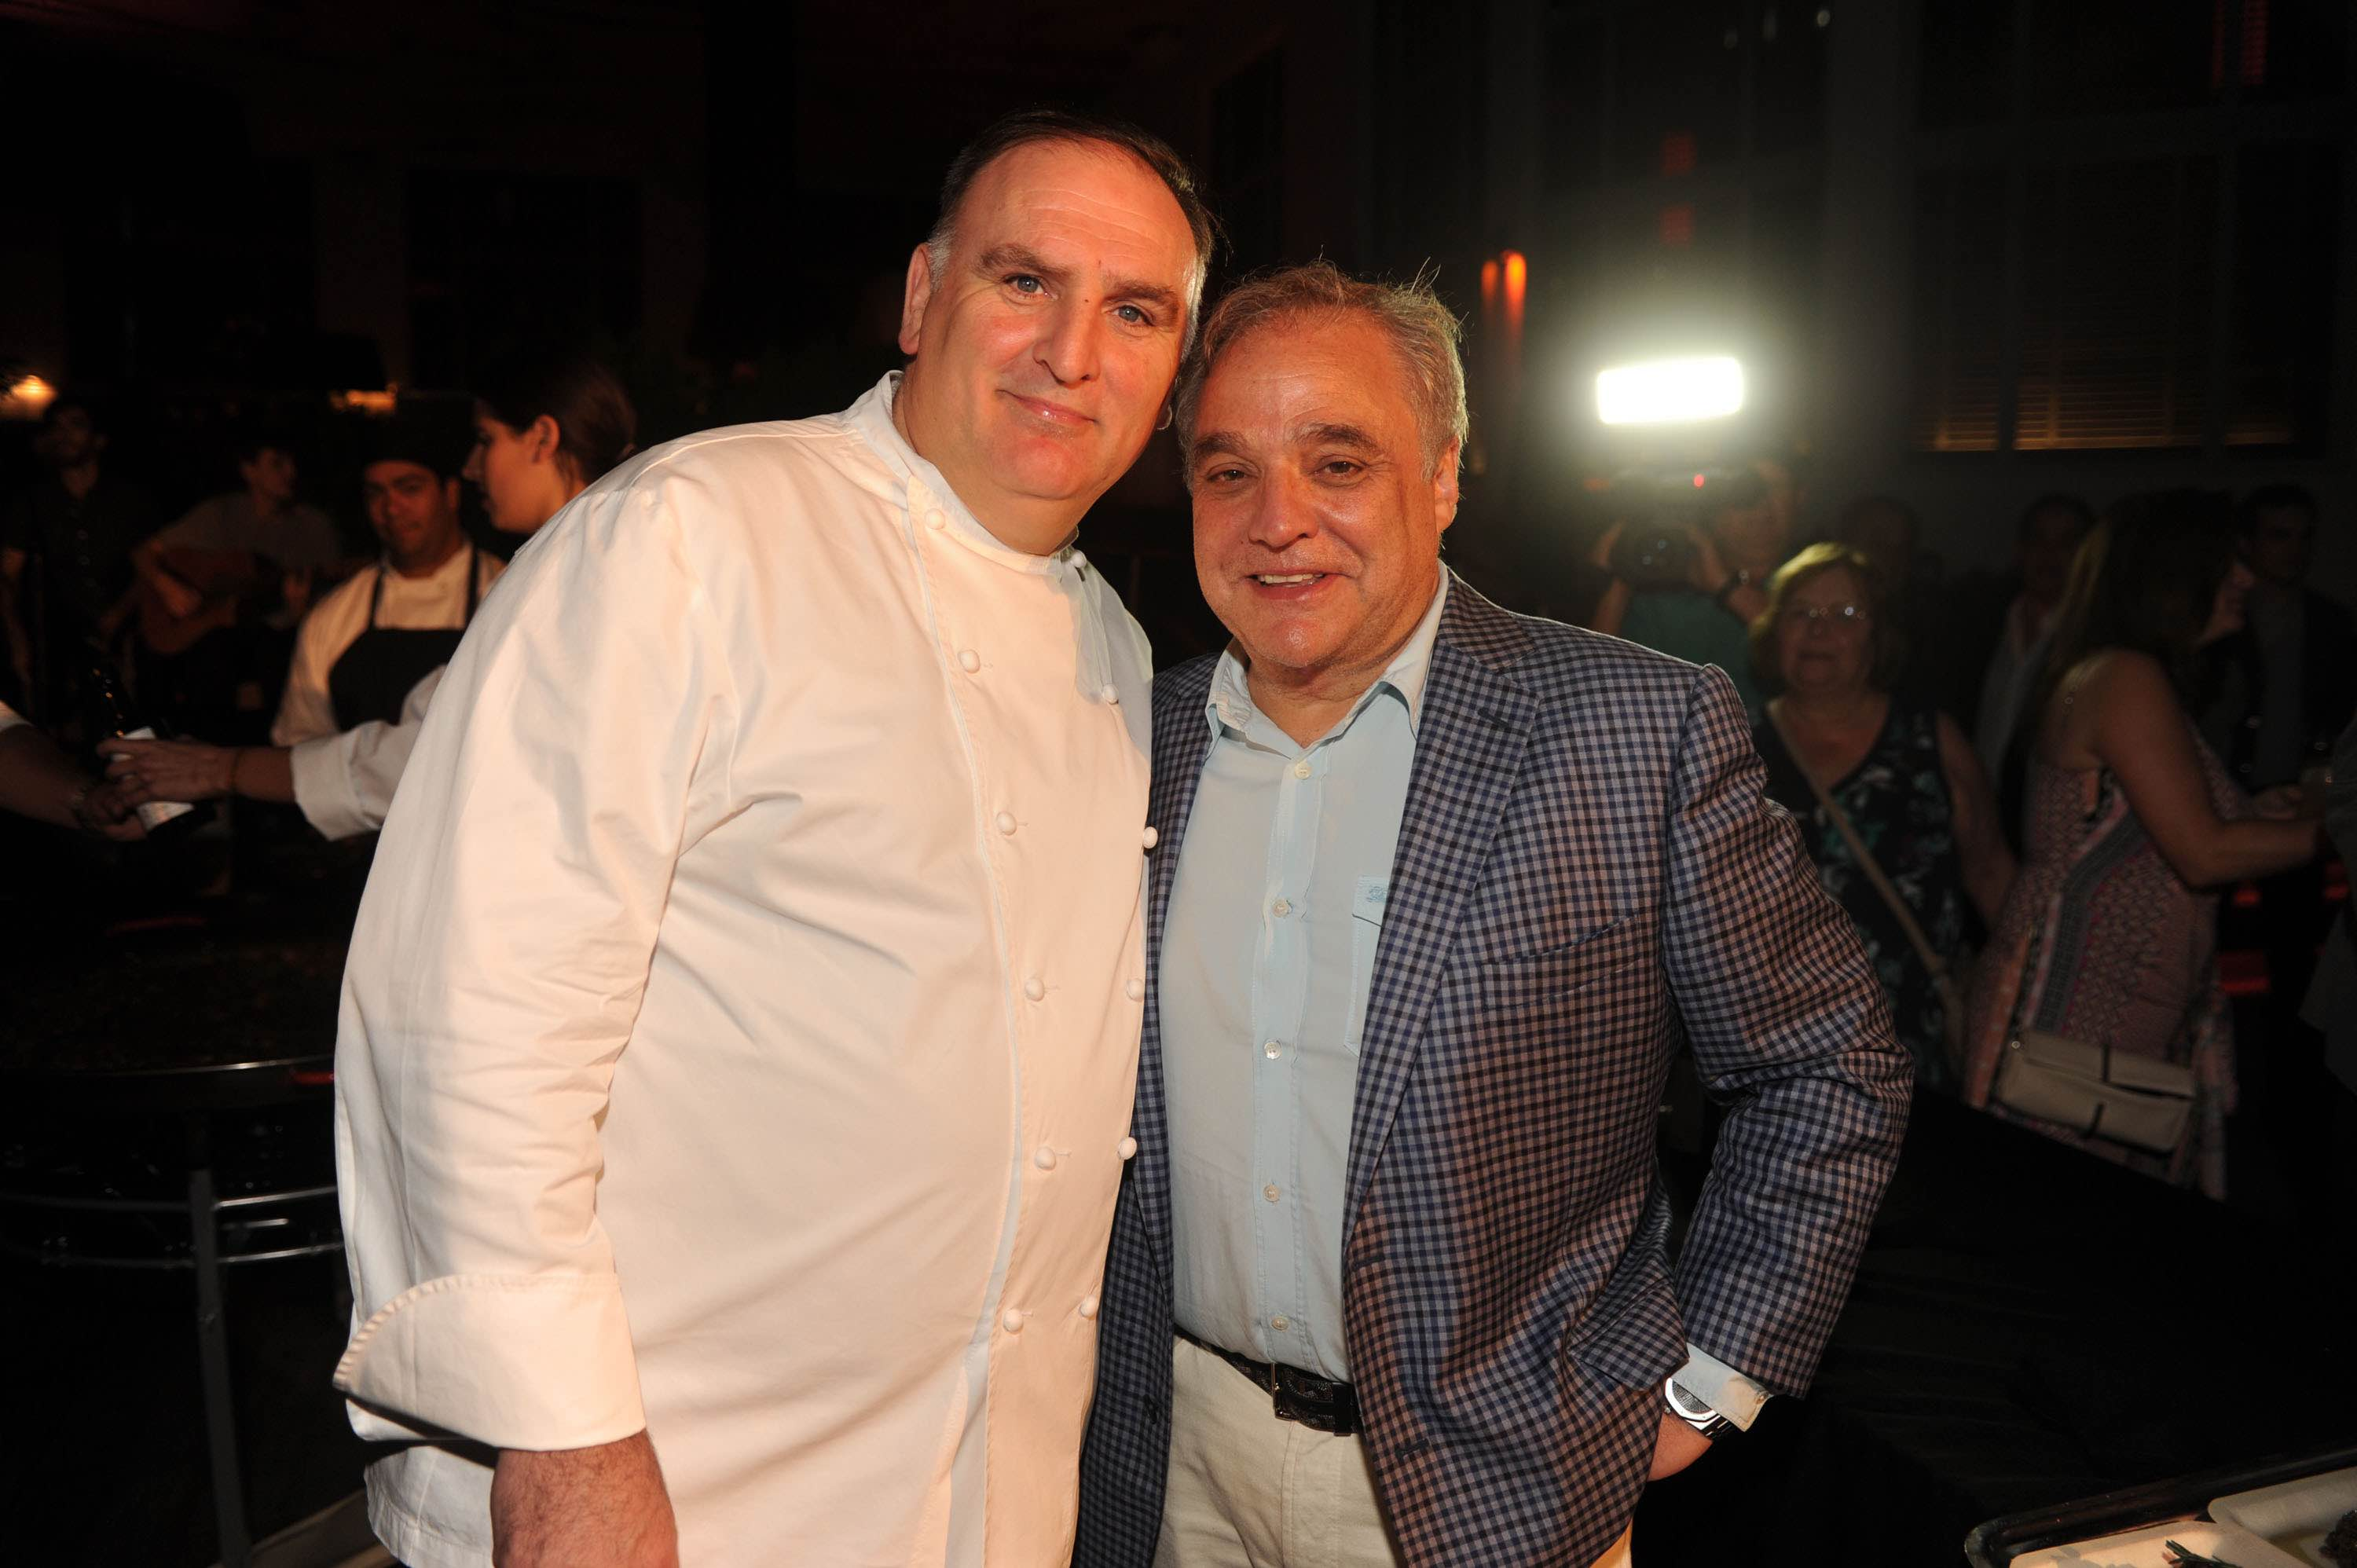 Paella & Tapas by the Pool hosted by José Andrés - 2017 Food Network & Cooking Channel South Beach Wine & Food Festival at SLS South Beach on February 23, 2017 in Miami Beach, Florida